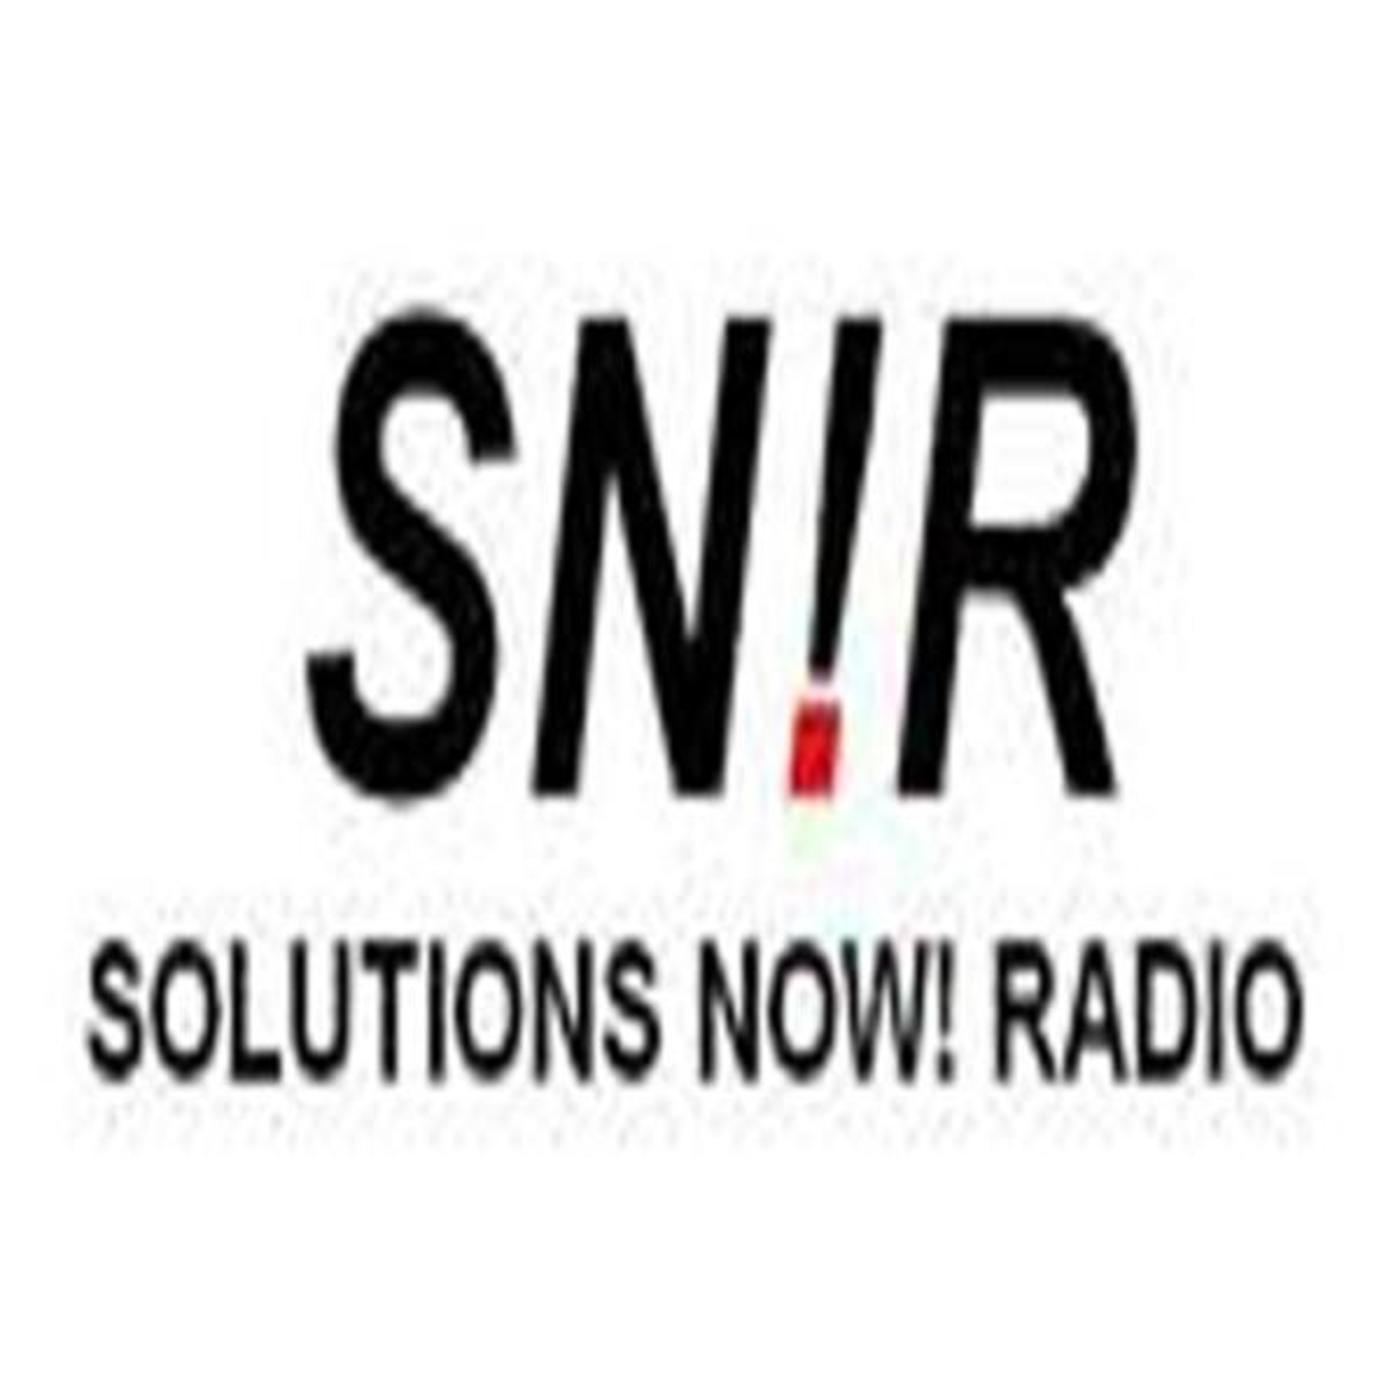 Solutions Now! Radio